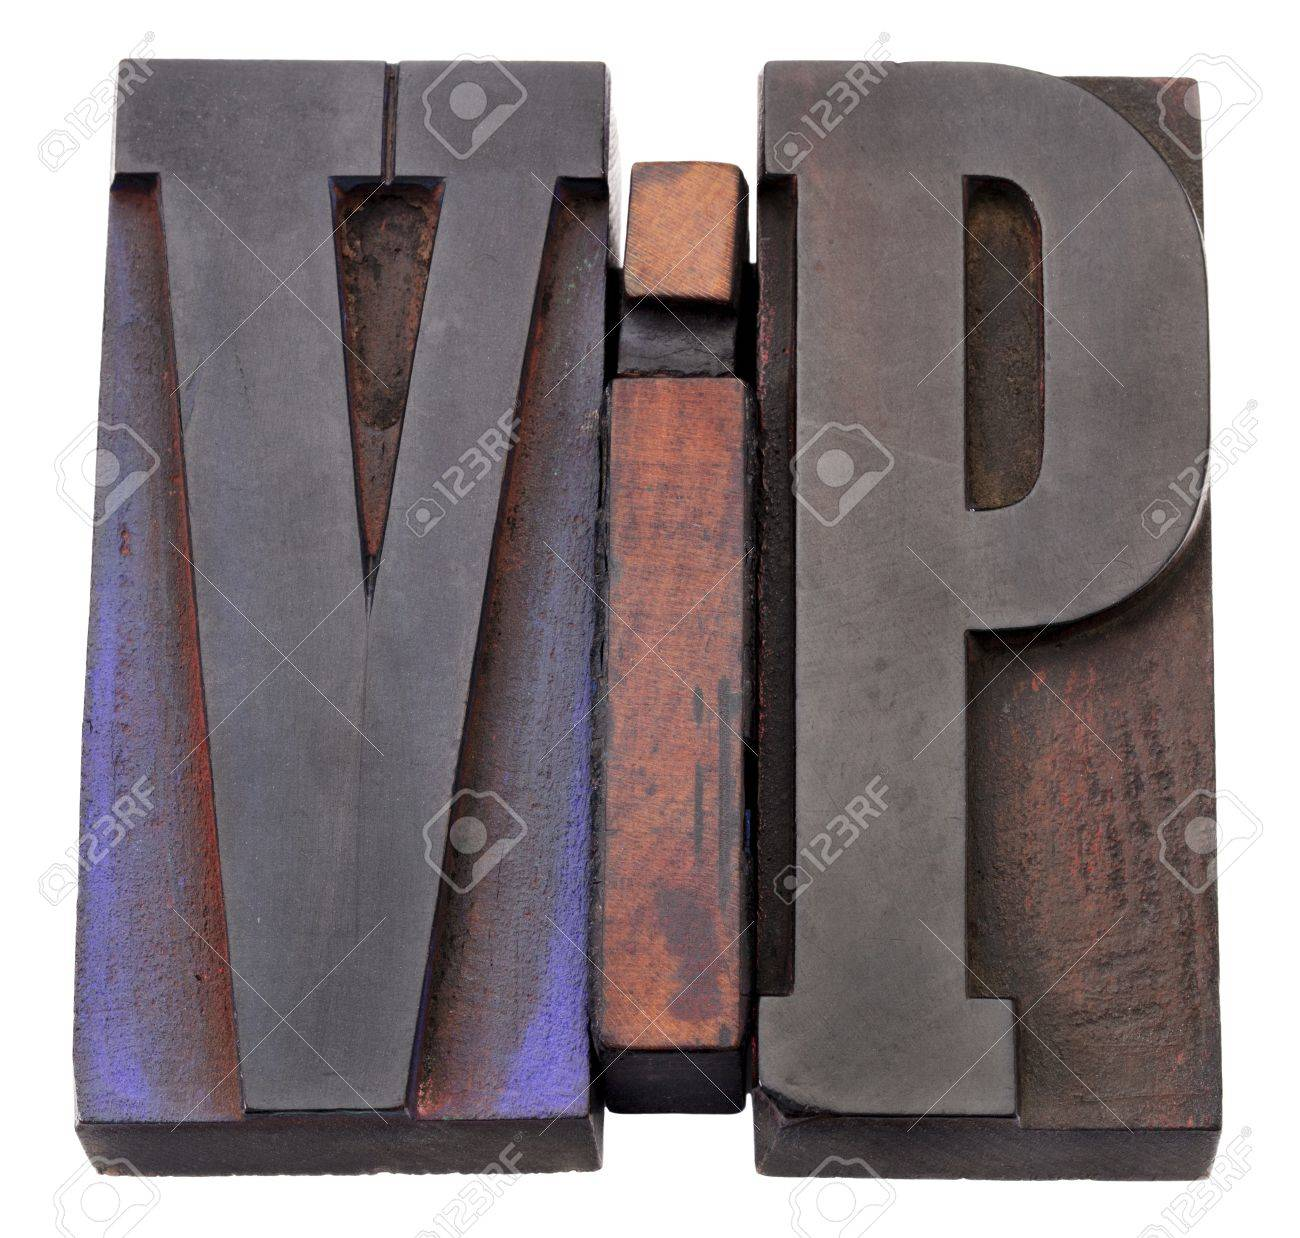 VIP (very important person)  acronym - isolated vintage wood letterpess printing blocks stained by color inks Stock Photo - 11279647